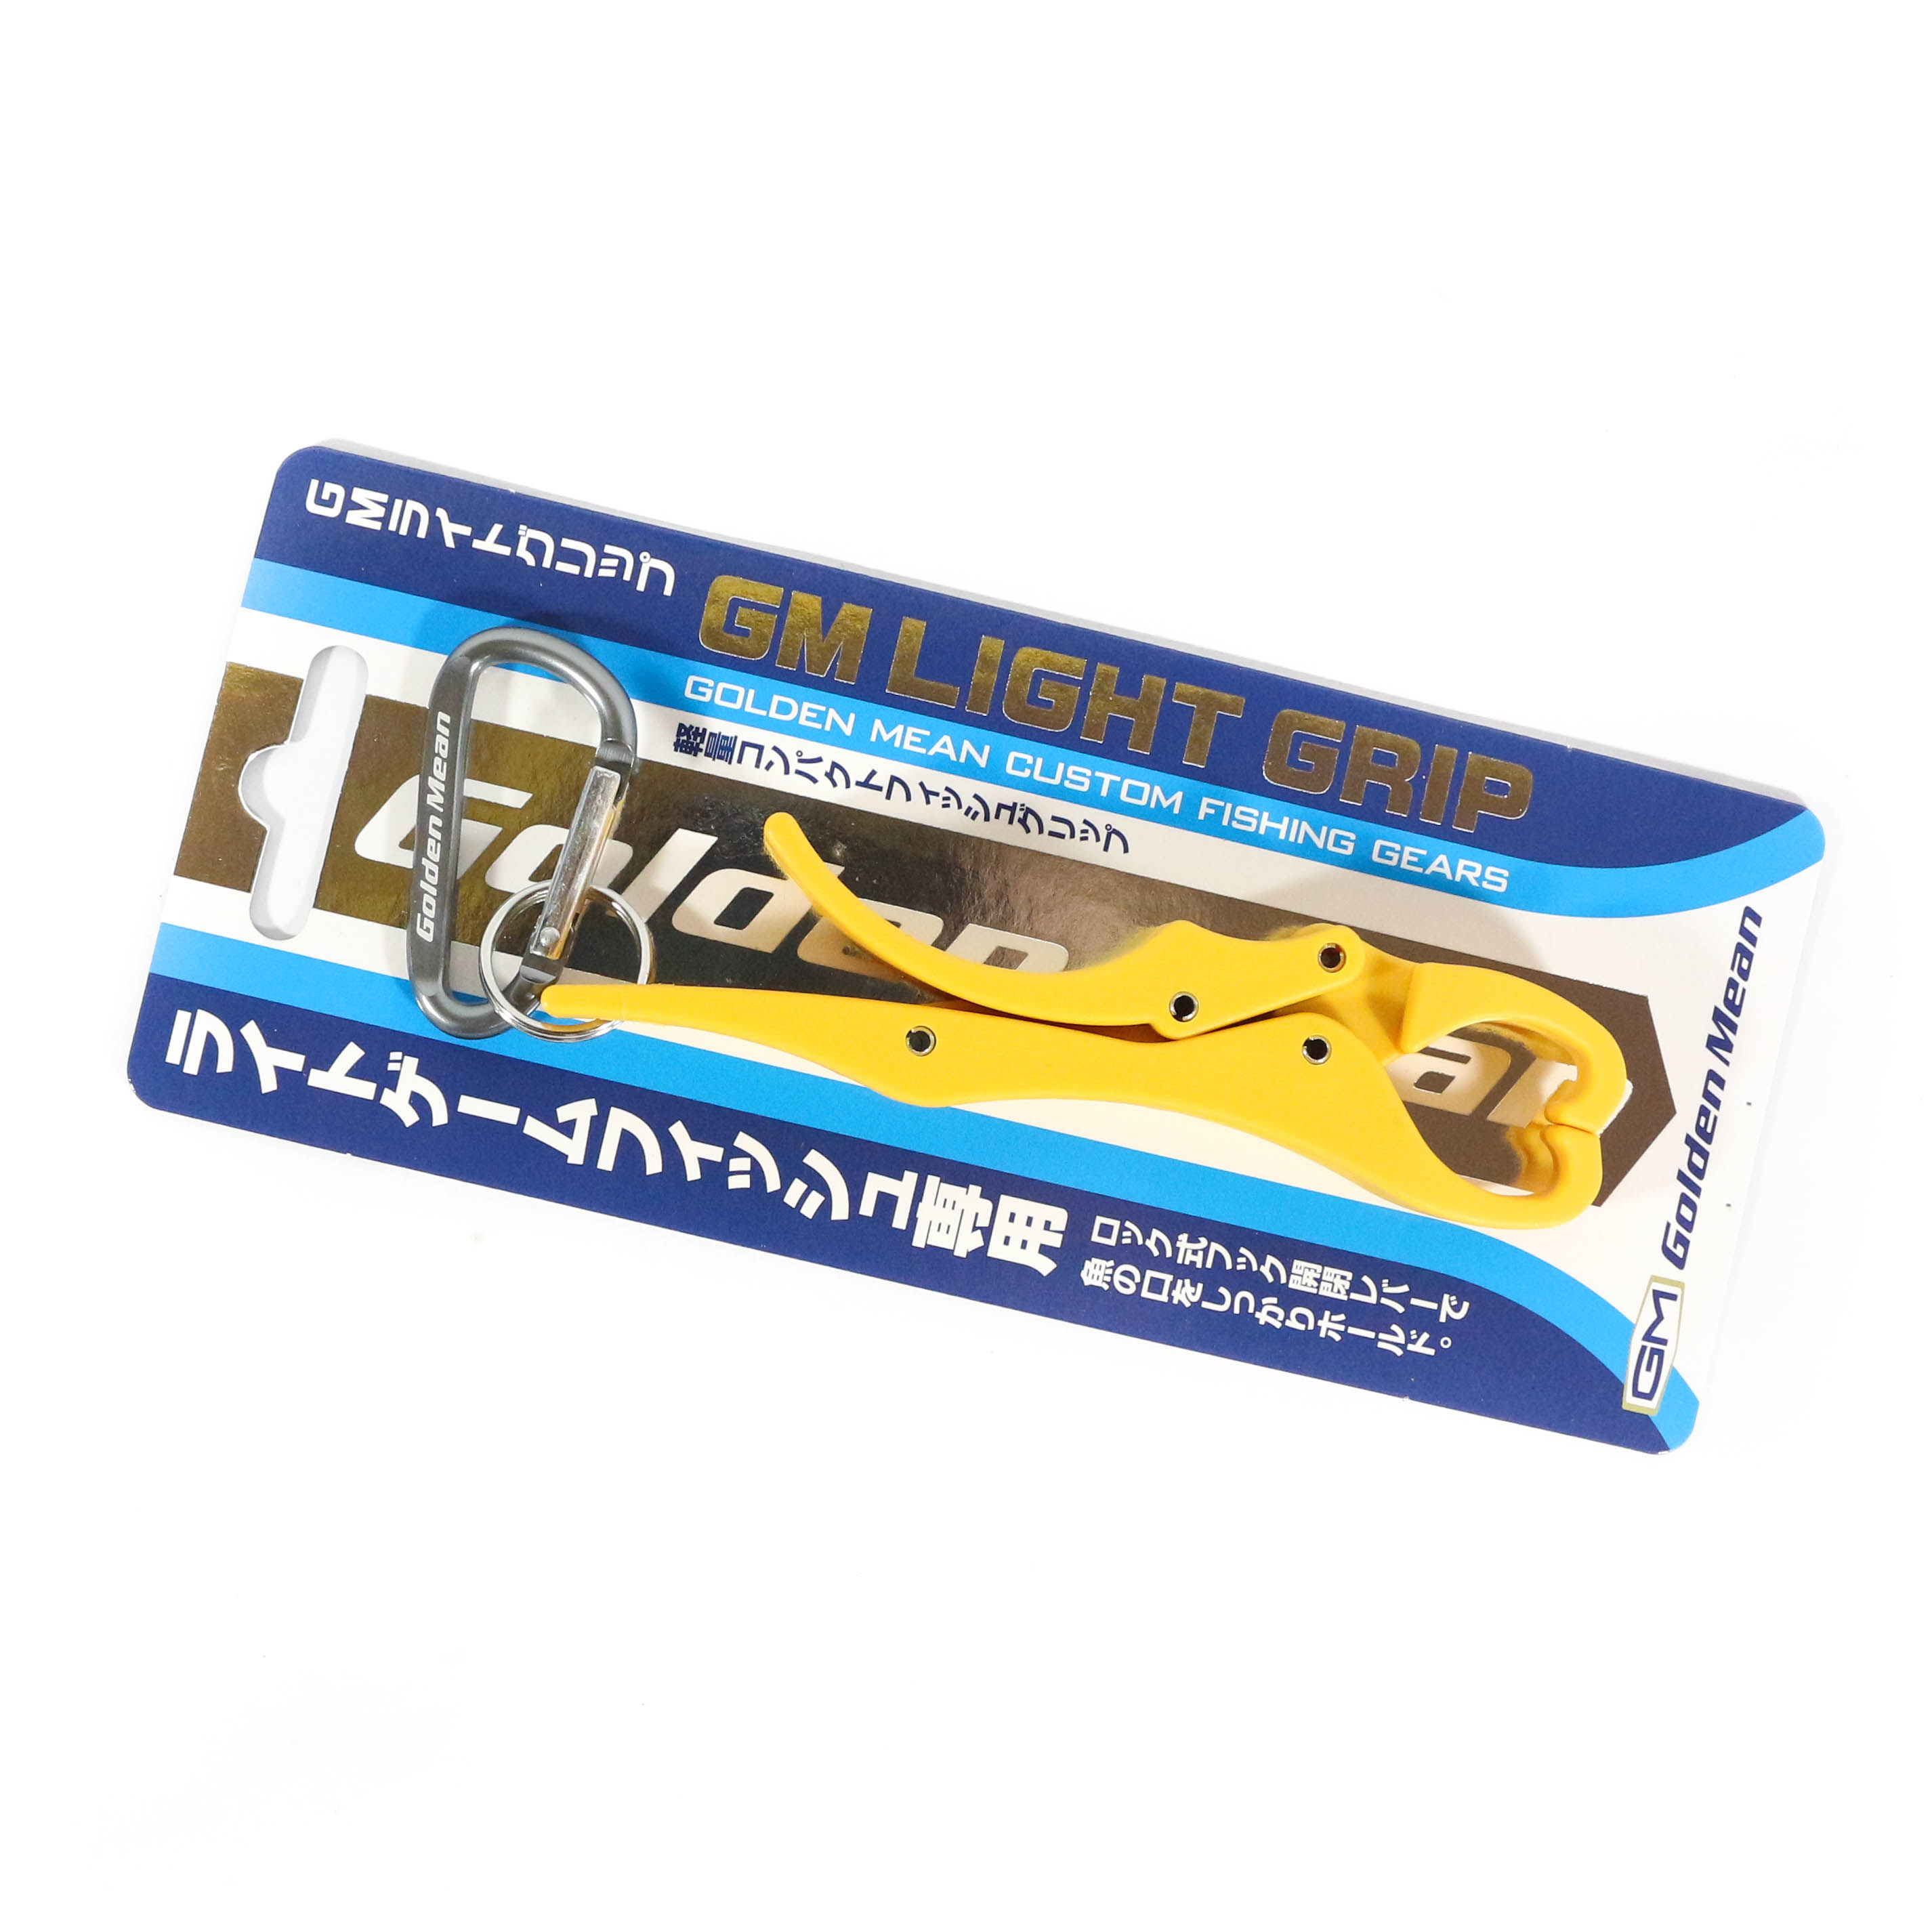 Golden Mean Grip GM Light Fish Grip 125 mm 35 grams Yellow (5849)